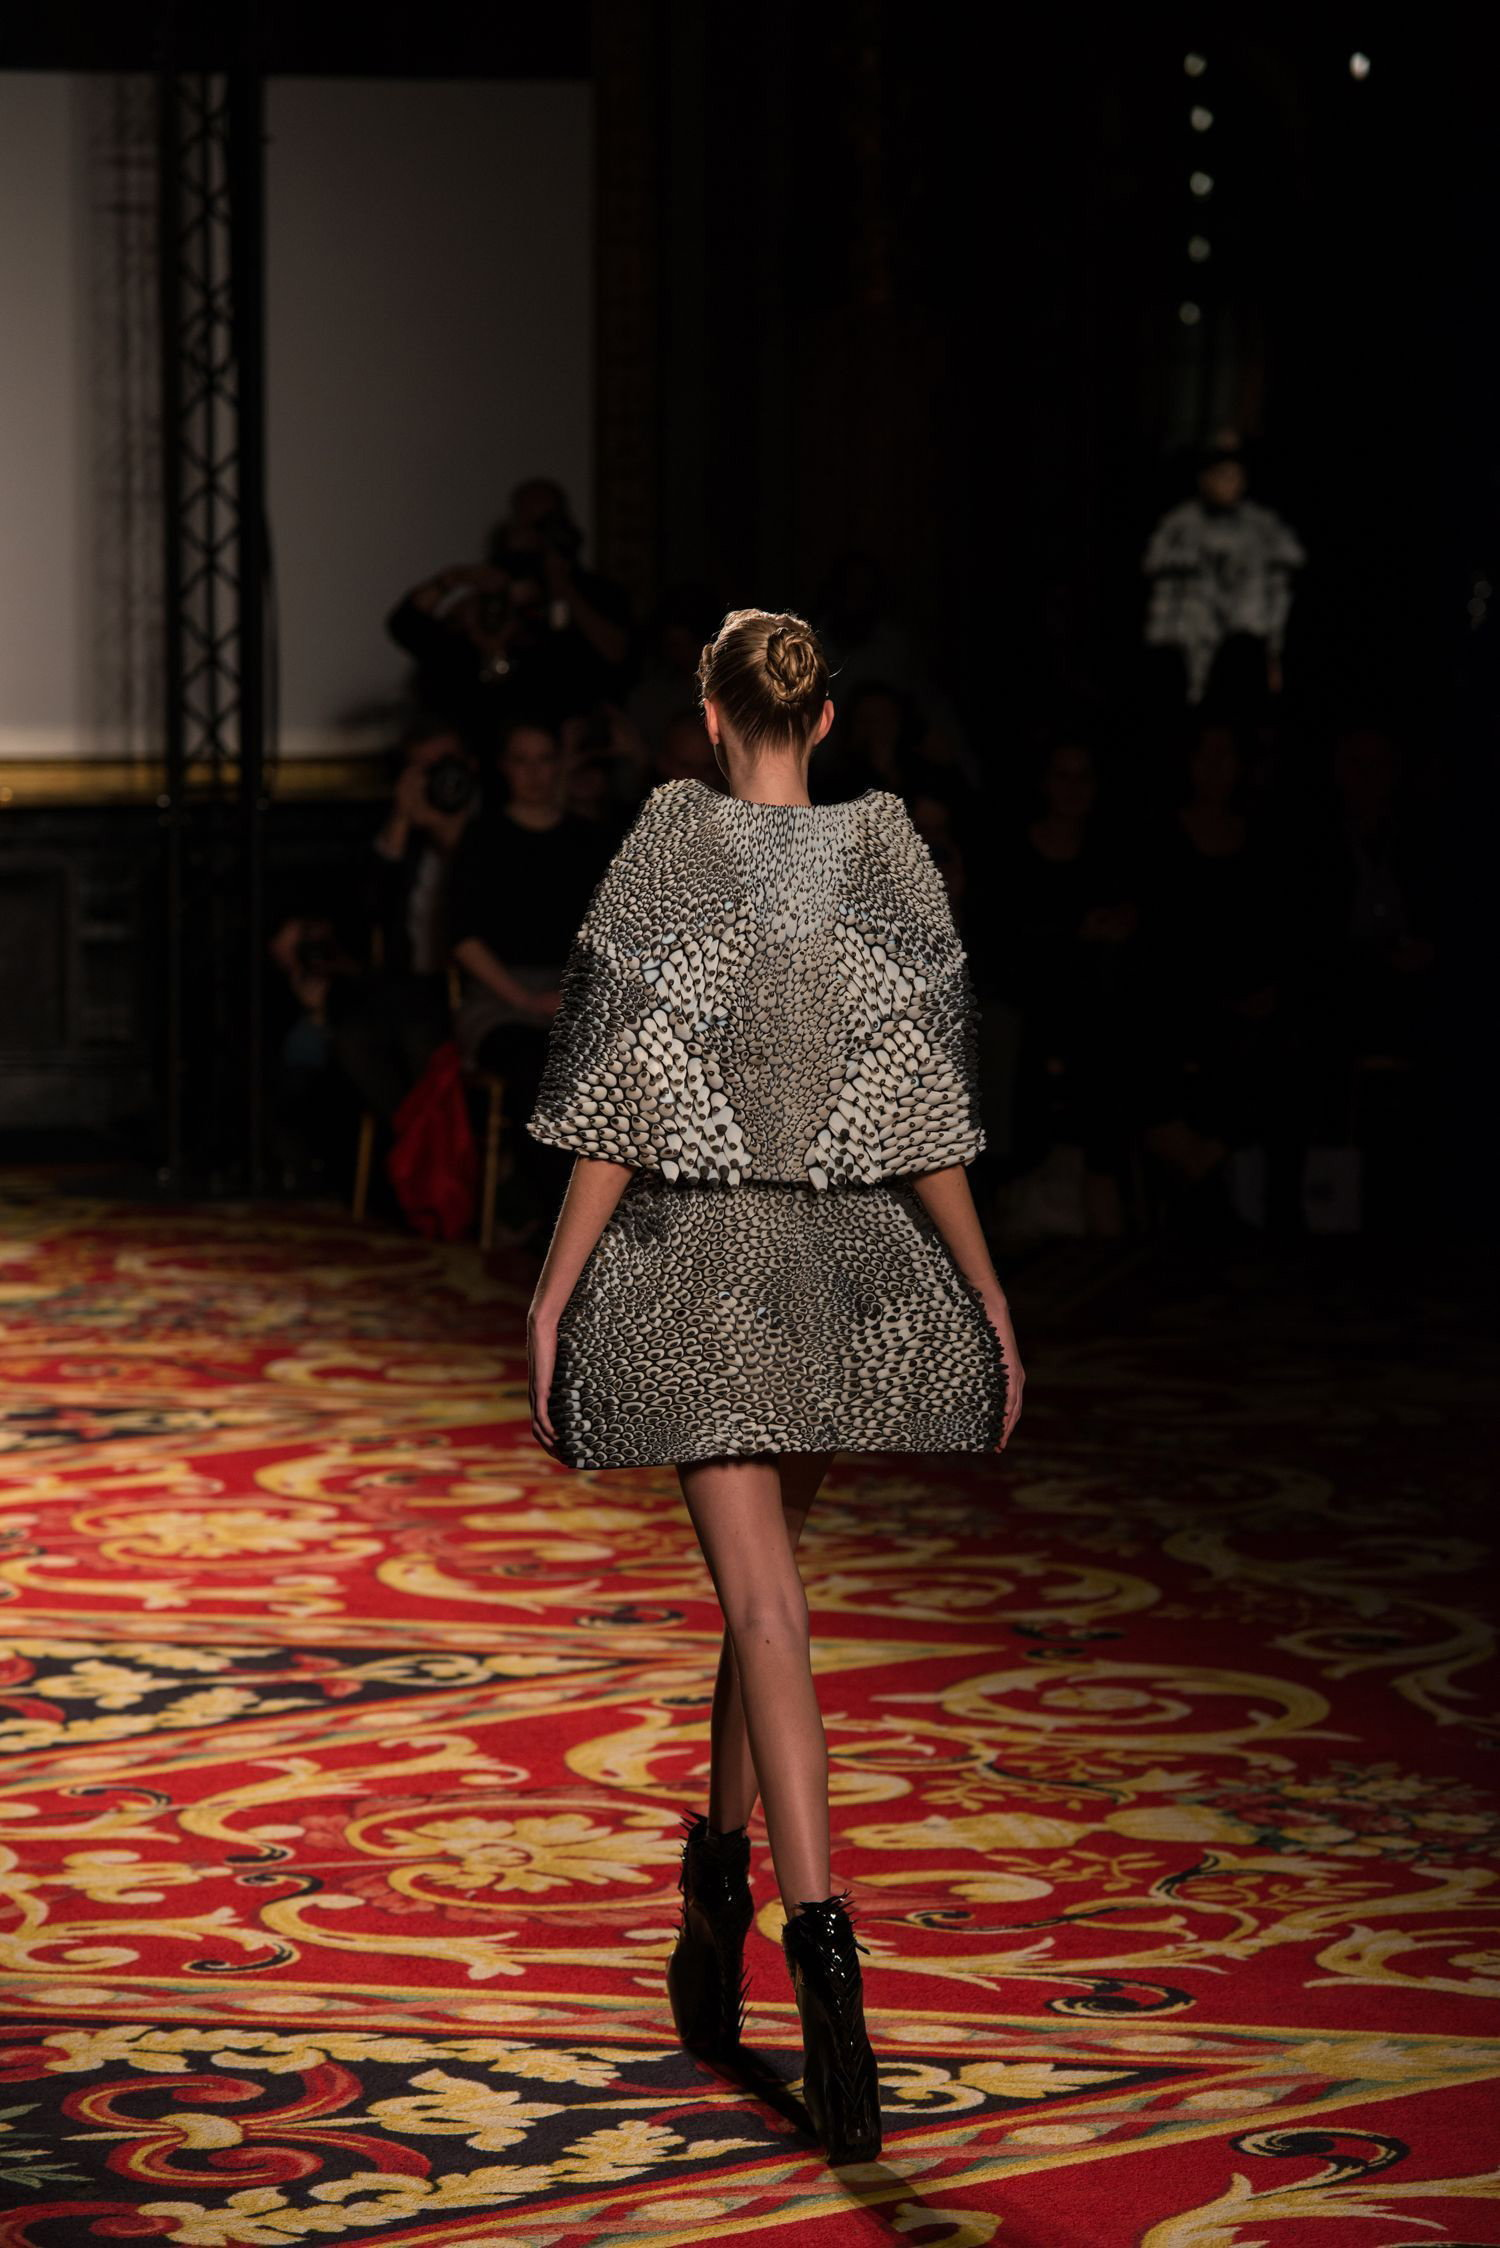 VOLTAGE by Iris van Herpen